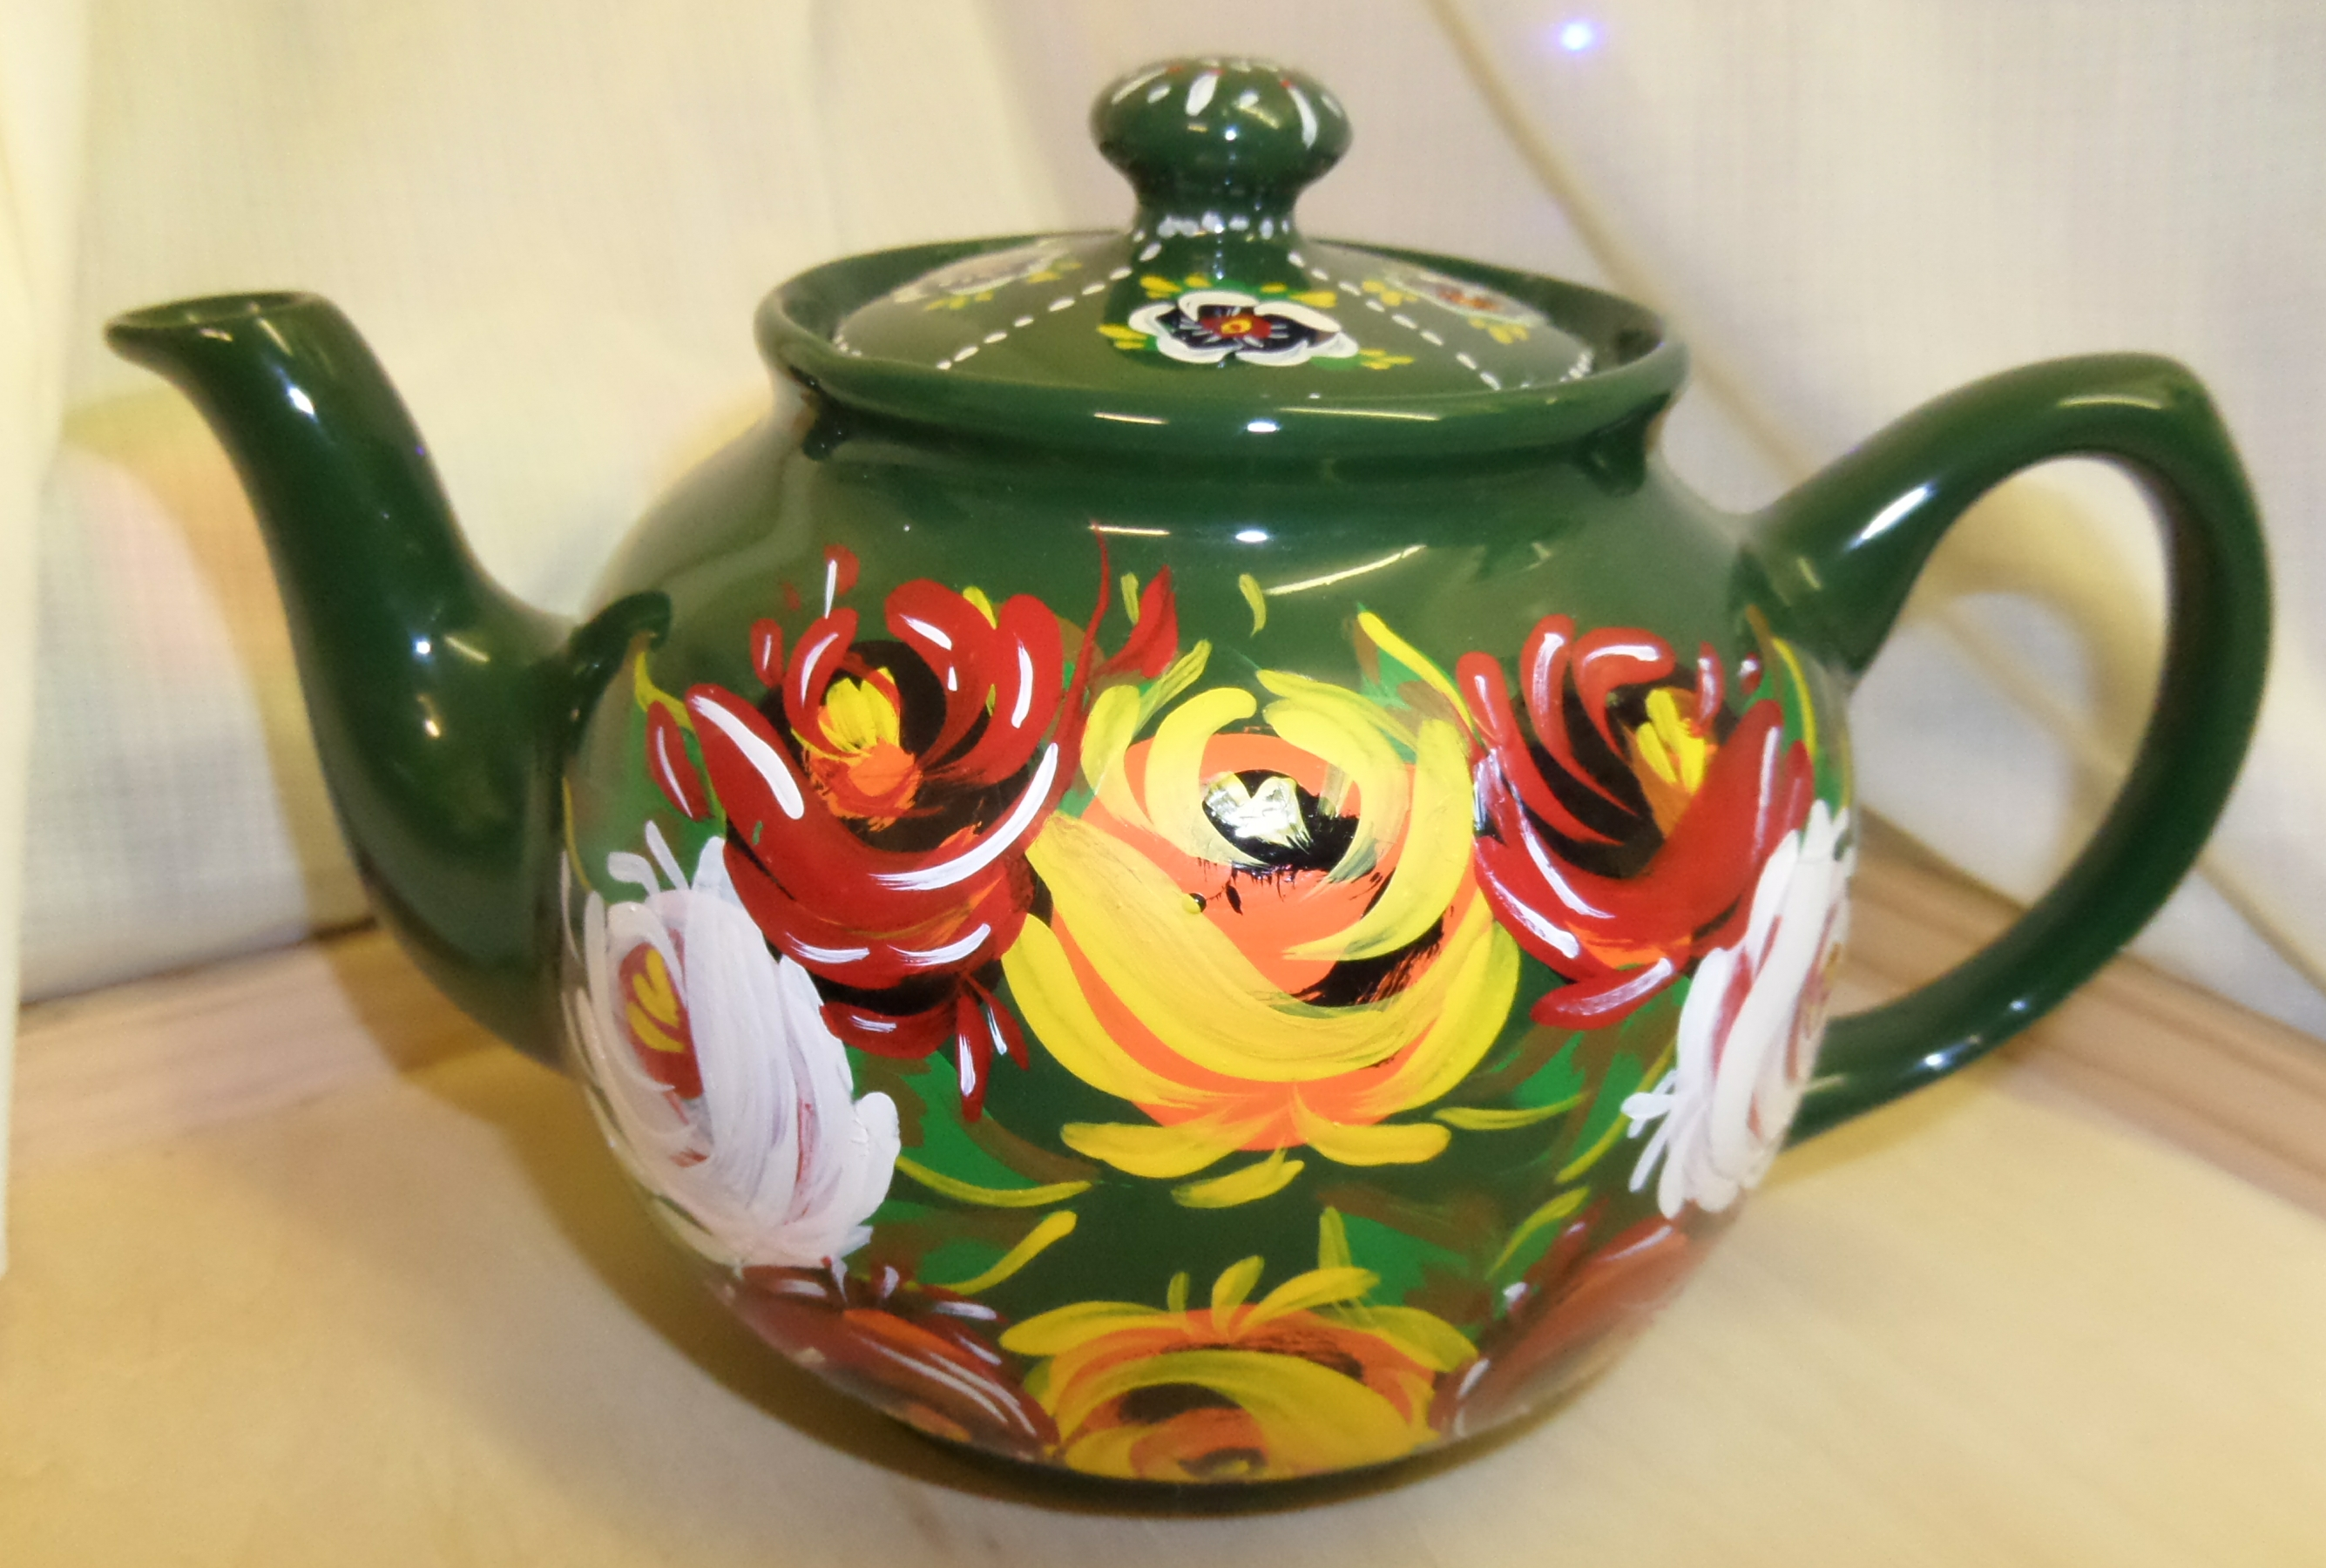 Tea Pot - medium, green